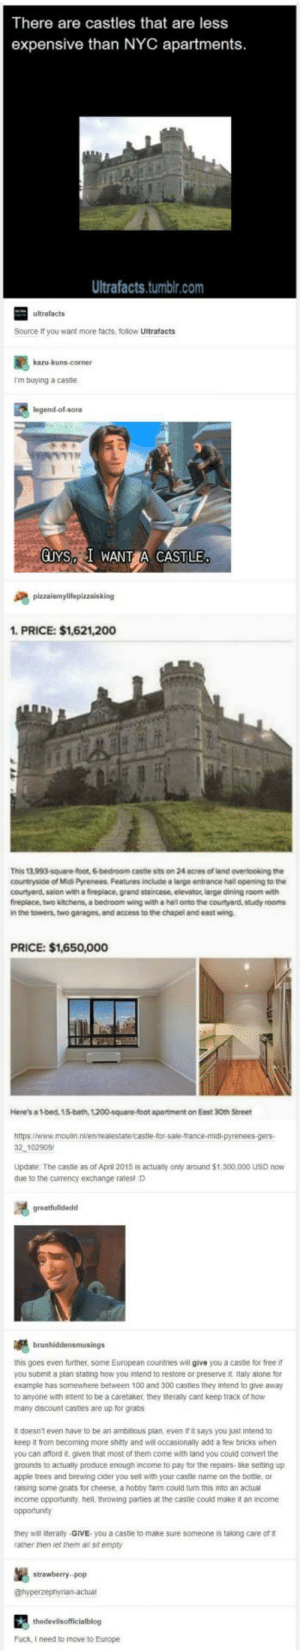 Being Alone, Anaconda, and Apple: There are castles that are less  expensive than NYC apartments  Ultrafacts.tumblr.com  ultrafacts  Source it you want more facts, follow Ultrafacts  I'm buying a castle  legend-ol-sora  GUYS I WANT CASTLE  1. PRICE: $1,621,200  This 13,993-square-foot, 6-bedroom cestle sits on 24 acres of land overlooking the  countryside of Midi Pyrenees. Features include a large entrance hall opening to the  courtyard, salon with a fireplace, grand staircase, elevator, large dining room with  fireplace, two kitchens, a bedroom wing with a hal onto the courtyard, study rooms  in the towers, two garages, and access to the chapel and east wing  PRICE: $1,650,000  Here's a 1-bed, 15-bath, 1200-square-foot apartment on Eest 30th Street  2 102909  Update The castle as of April 2015 is actualy only around $1,300,000 USD now  due to the currency exchange ratesl D  this goes even further, some European countries will give you a castle for free if  you submit a plan stating how you intend to restore or preserve it Italy alone for  example has somewhere between 100 and 300 castles they intend to give away  to anyone with intent to be a caretaker, they iteraly cant keep track of how  many discount casties are up for grabs  It doesn't even have to be an ambitious plan, even it it says you just intend to  keep it from becoming more shitty and will occasionally add a few bricks when  you can aford it. given that most of them come with land you could convert the  grounds to actually produce enough income to pay for the repairs-like setting up  apple trees and brewing cider you sell with your castle name on the bottle or  raising some goats for cheese, a hobby farm could turn this into an actual  income opportunity. hell, throwing parties at the caste could make it an income  opportunity  they will literally-GIVE you a caste to make sure someone is taking care of  ramer men let them a sit empty  stowebery  Fuck, I need to move to Europe BRB breaking my piggy bank and moving to Europe